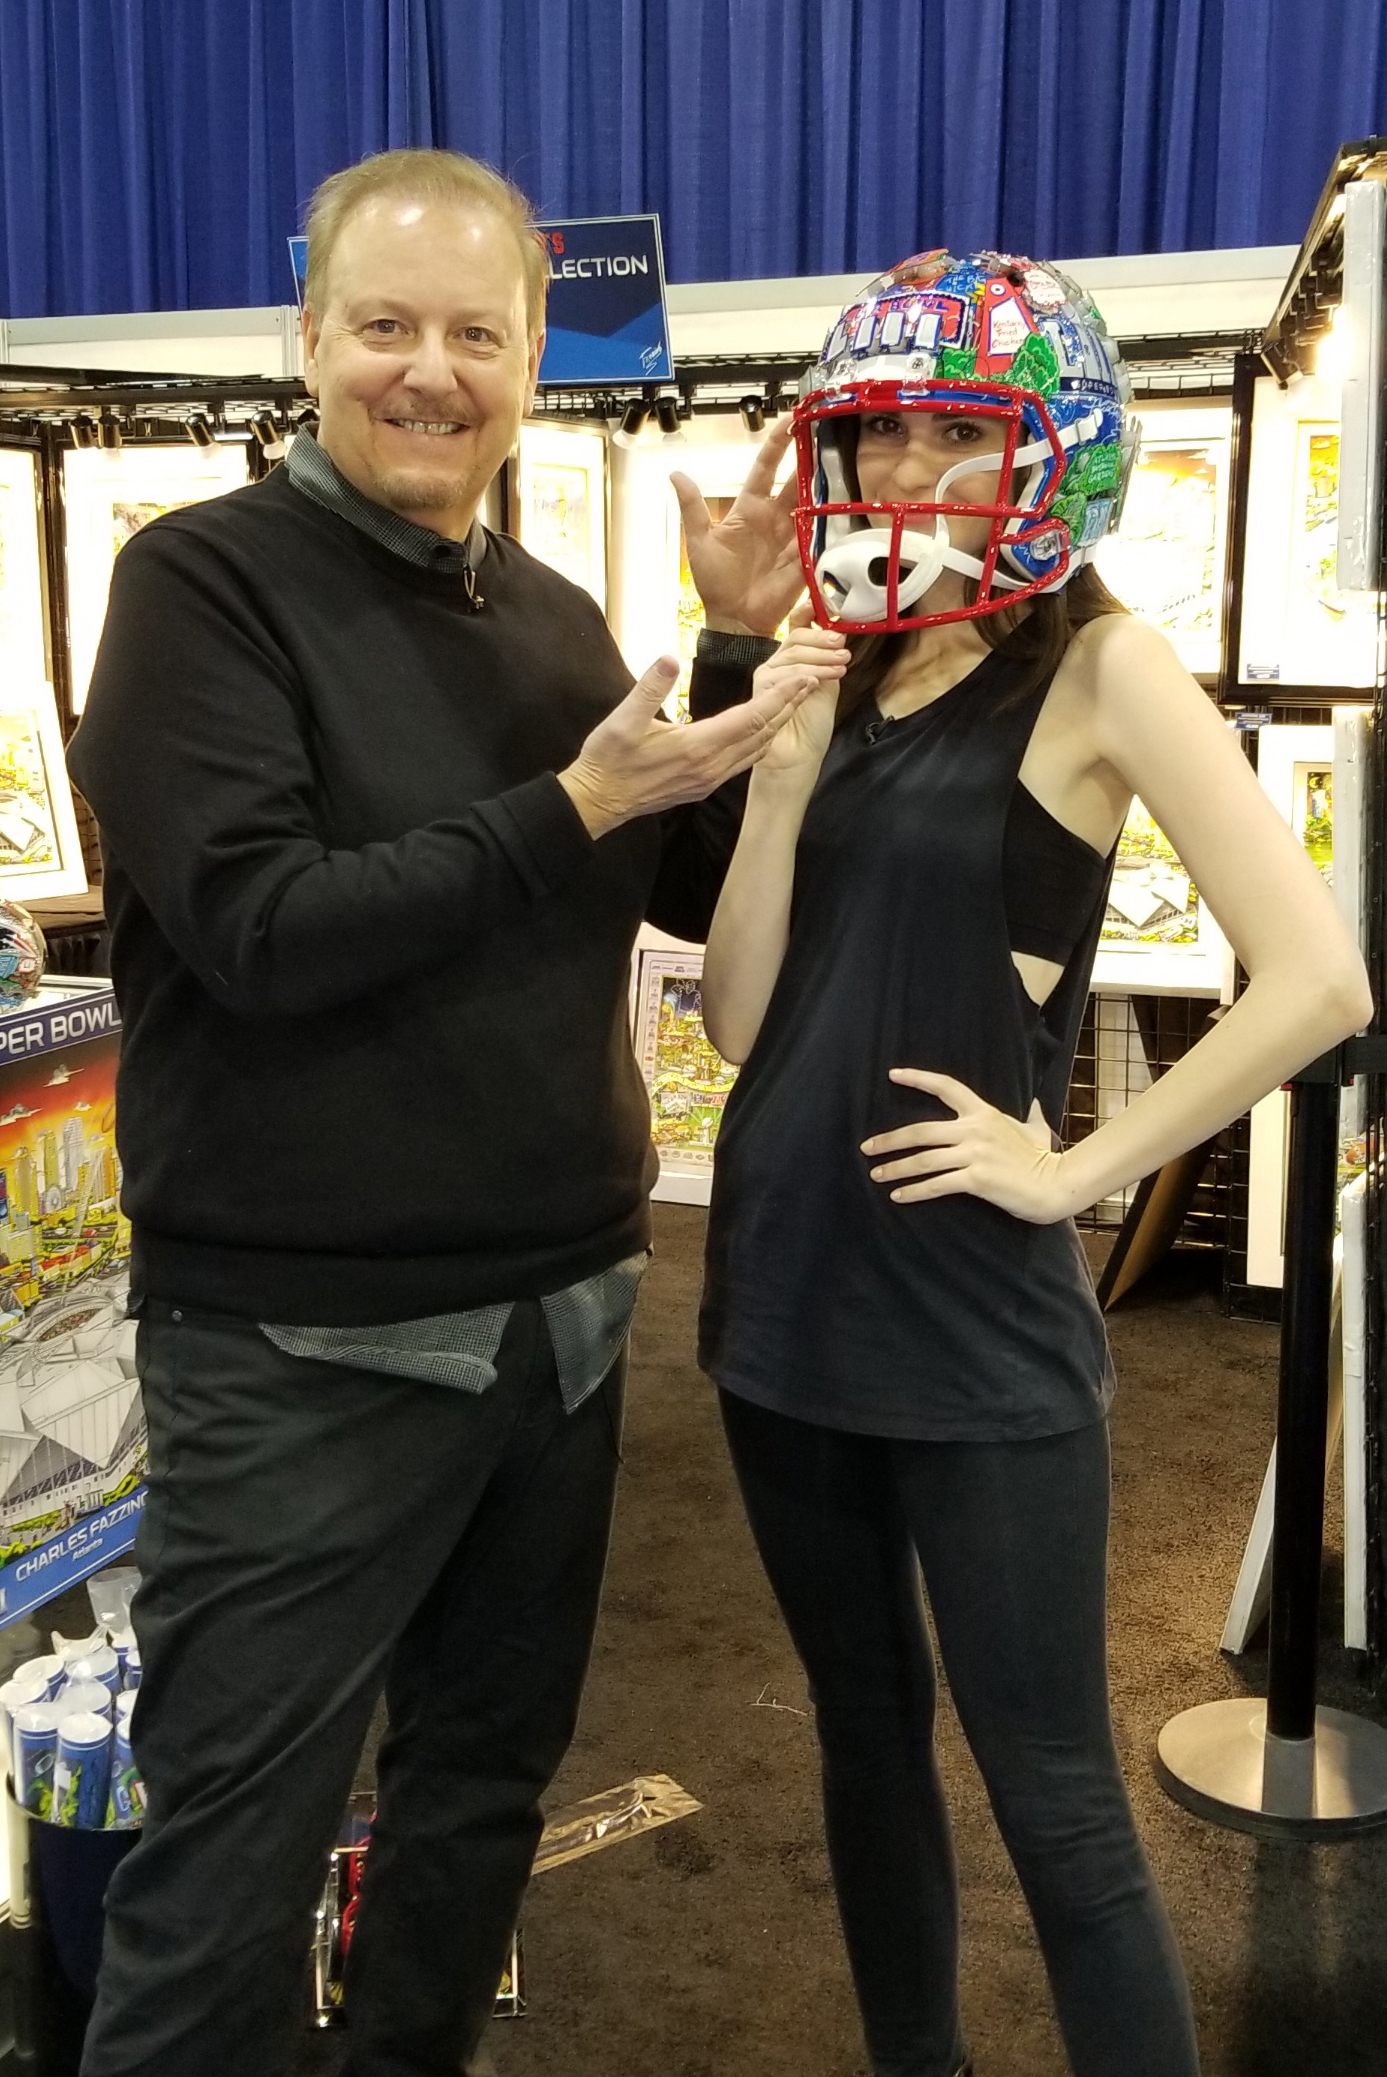 Charles Fazzino puts the Super Bowl LIII helmet on Kelleth Cuthbert's head as they stand in front of the NFL Experience booth